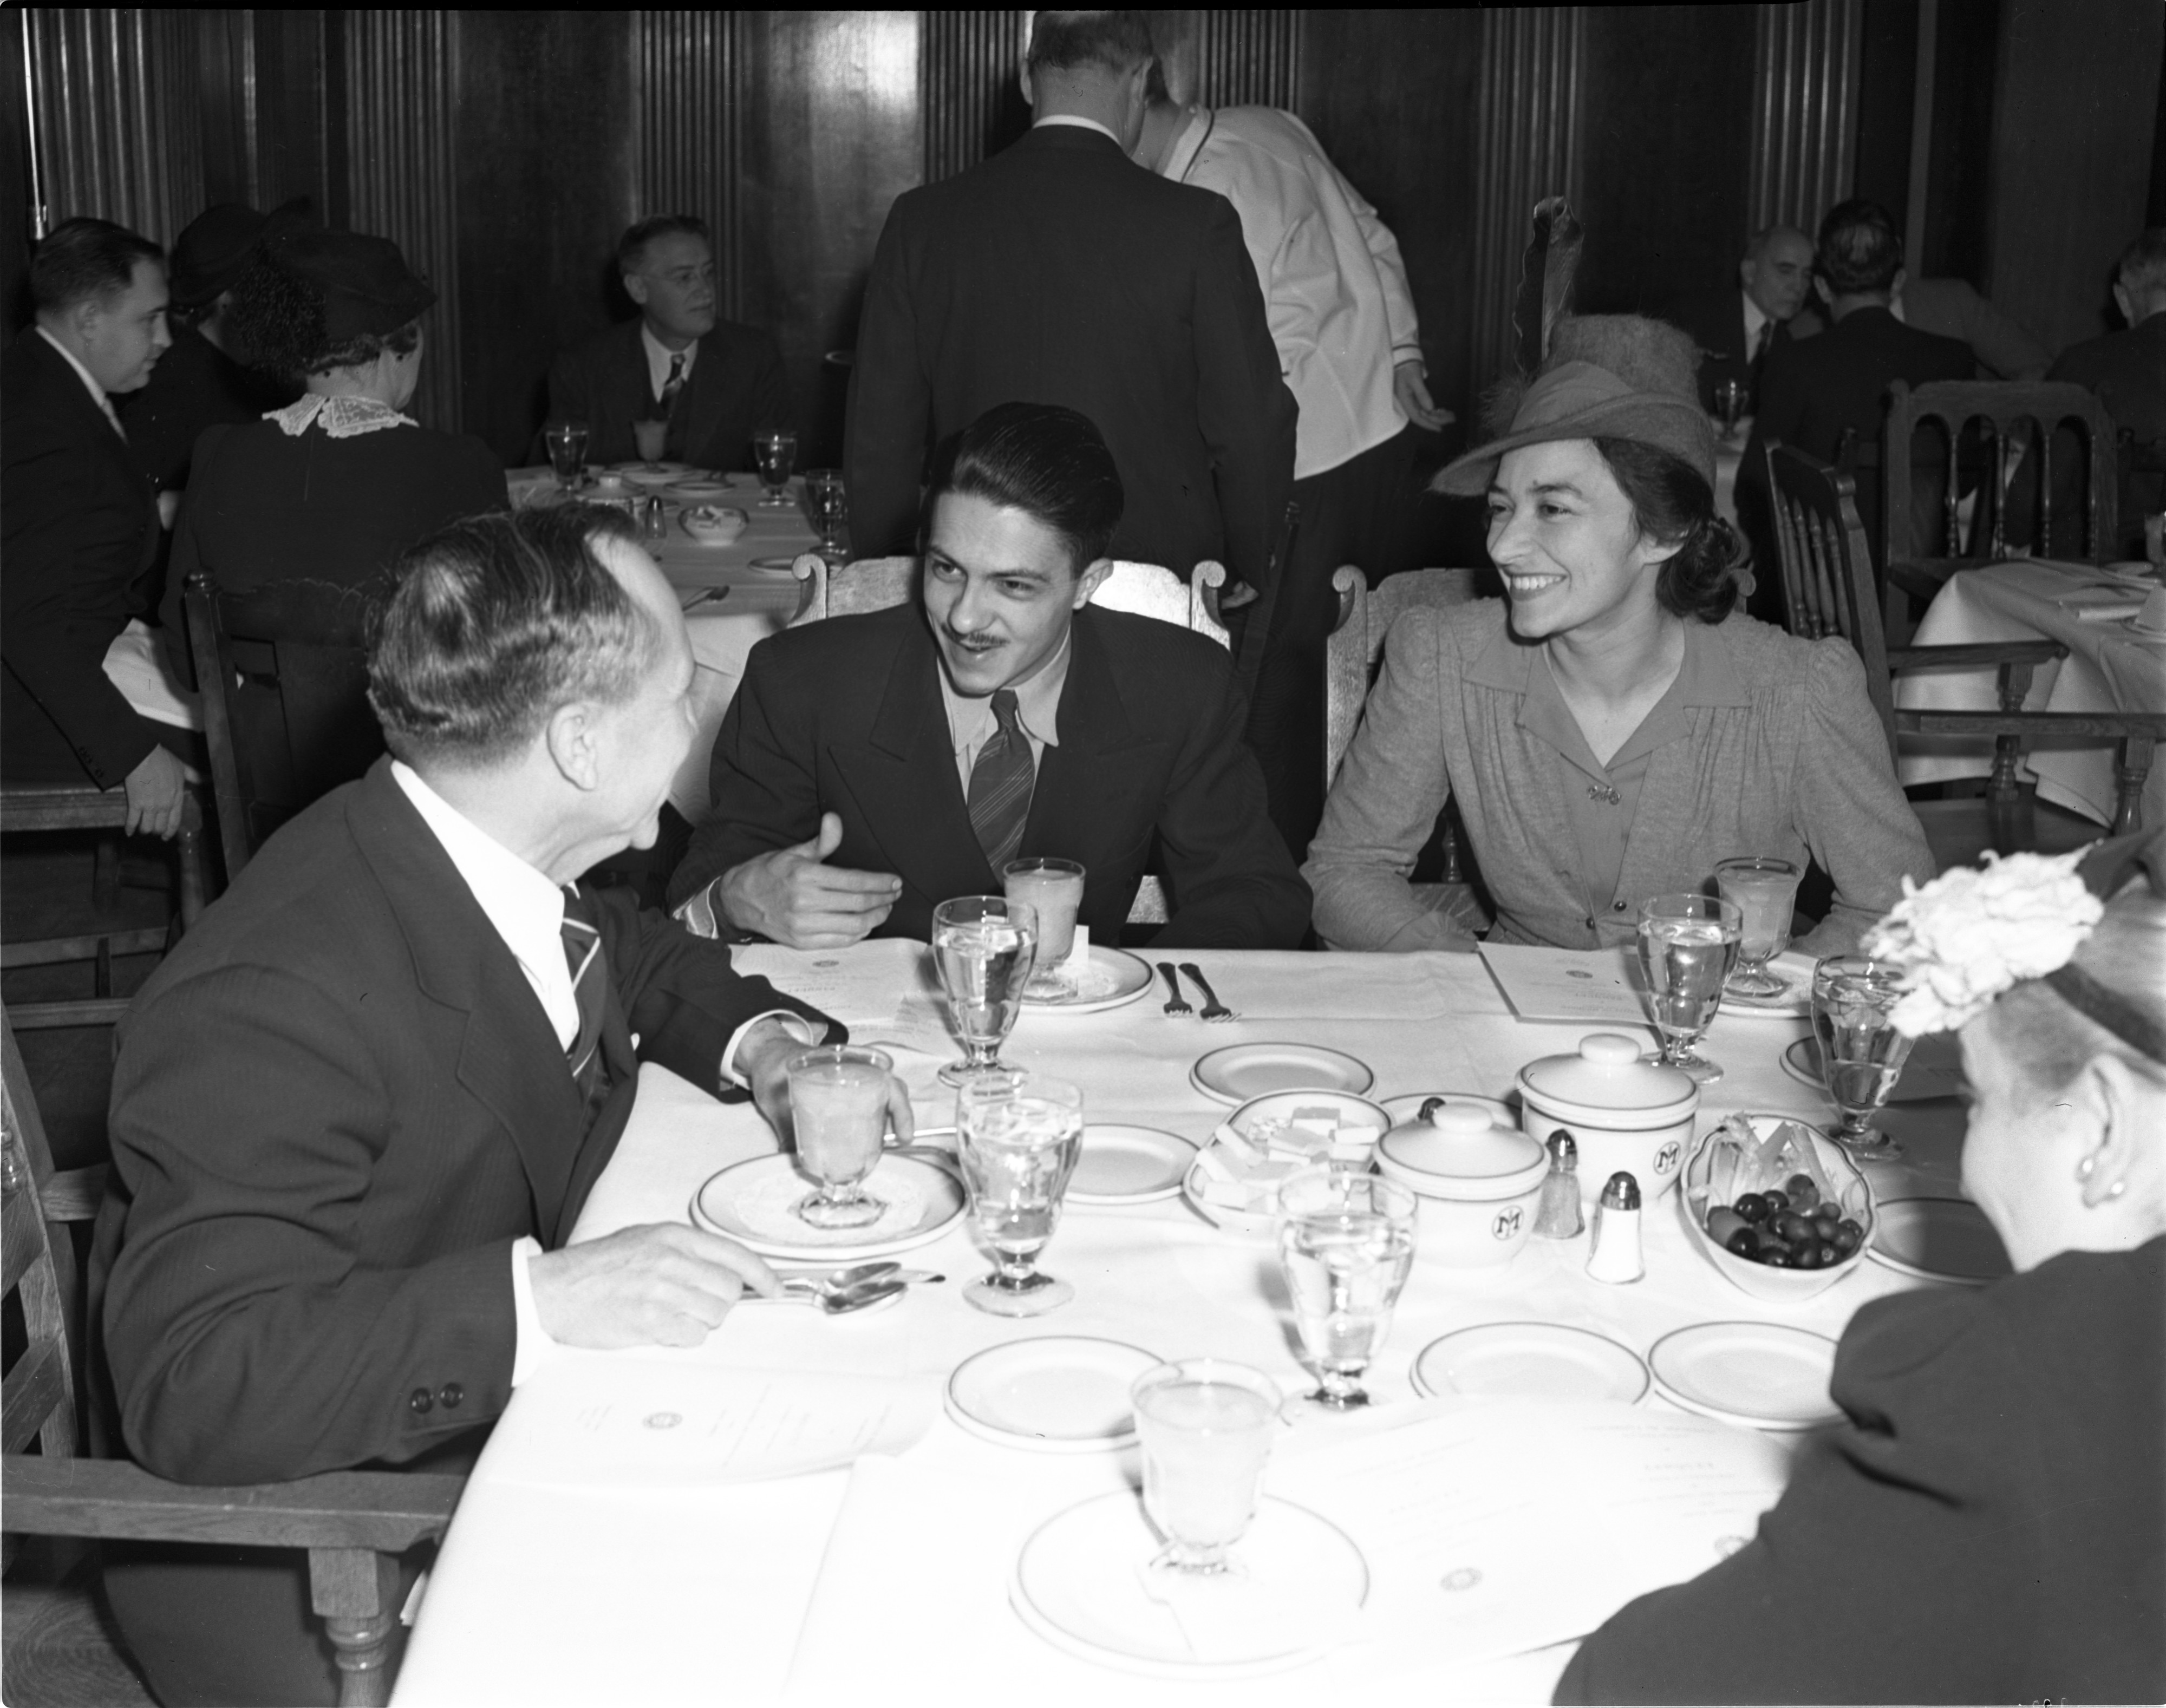 UM Professor, Julio del Toro, Far Left, Talks To Students From South America At The Michigan Union, 1941 image